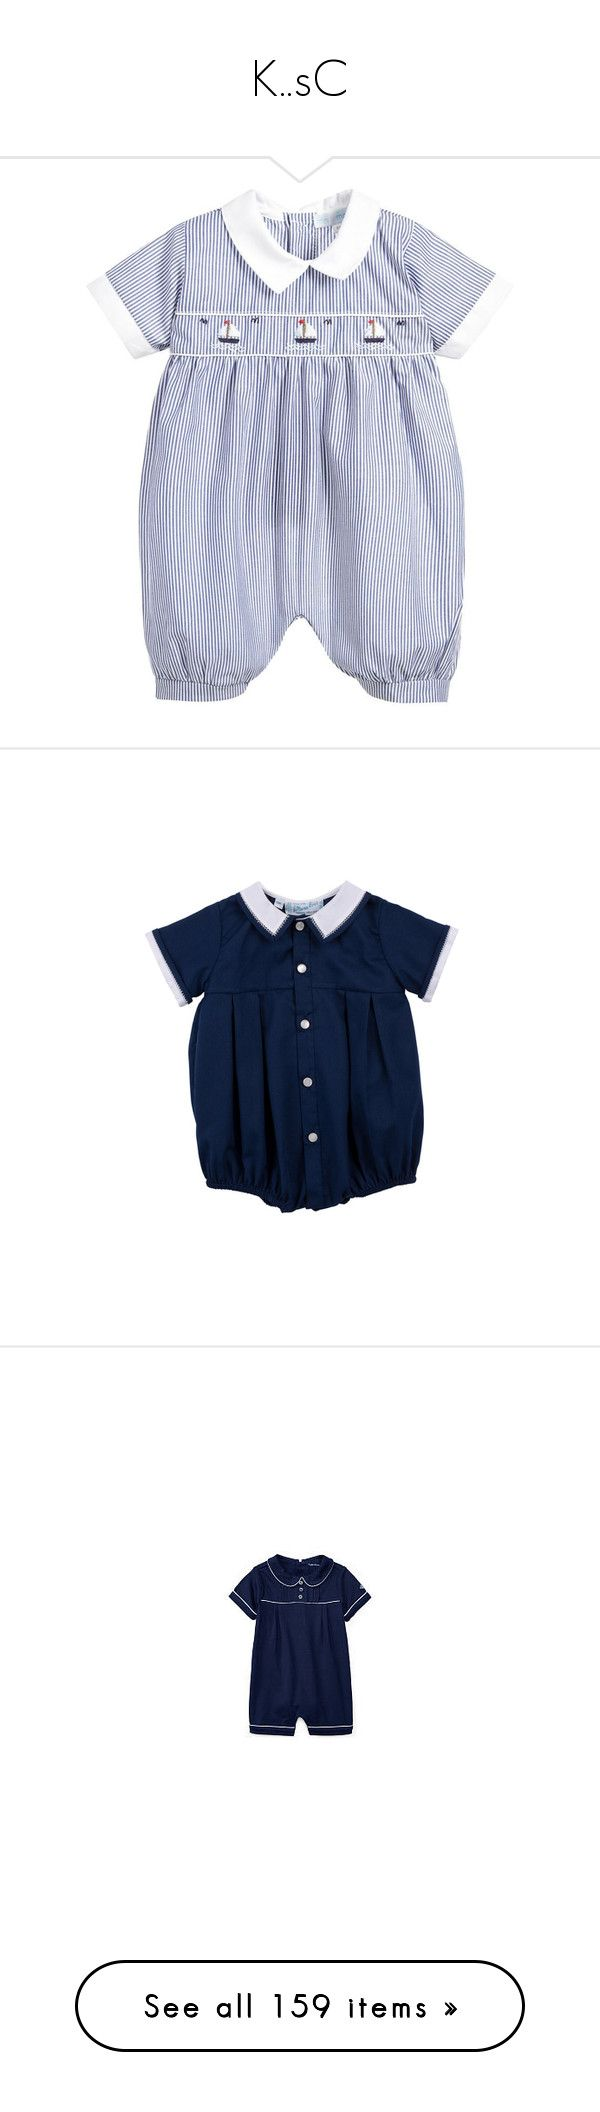 """K..sC"" by duchessq ❤ liked on Polyvore featuring baby, baby boy, baby girl, rachel riley, kids, baby clothes, boys, outerwear, vests and cable knit sweater vest"